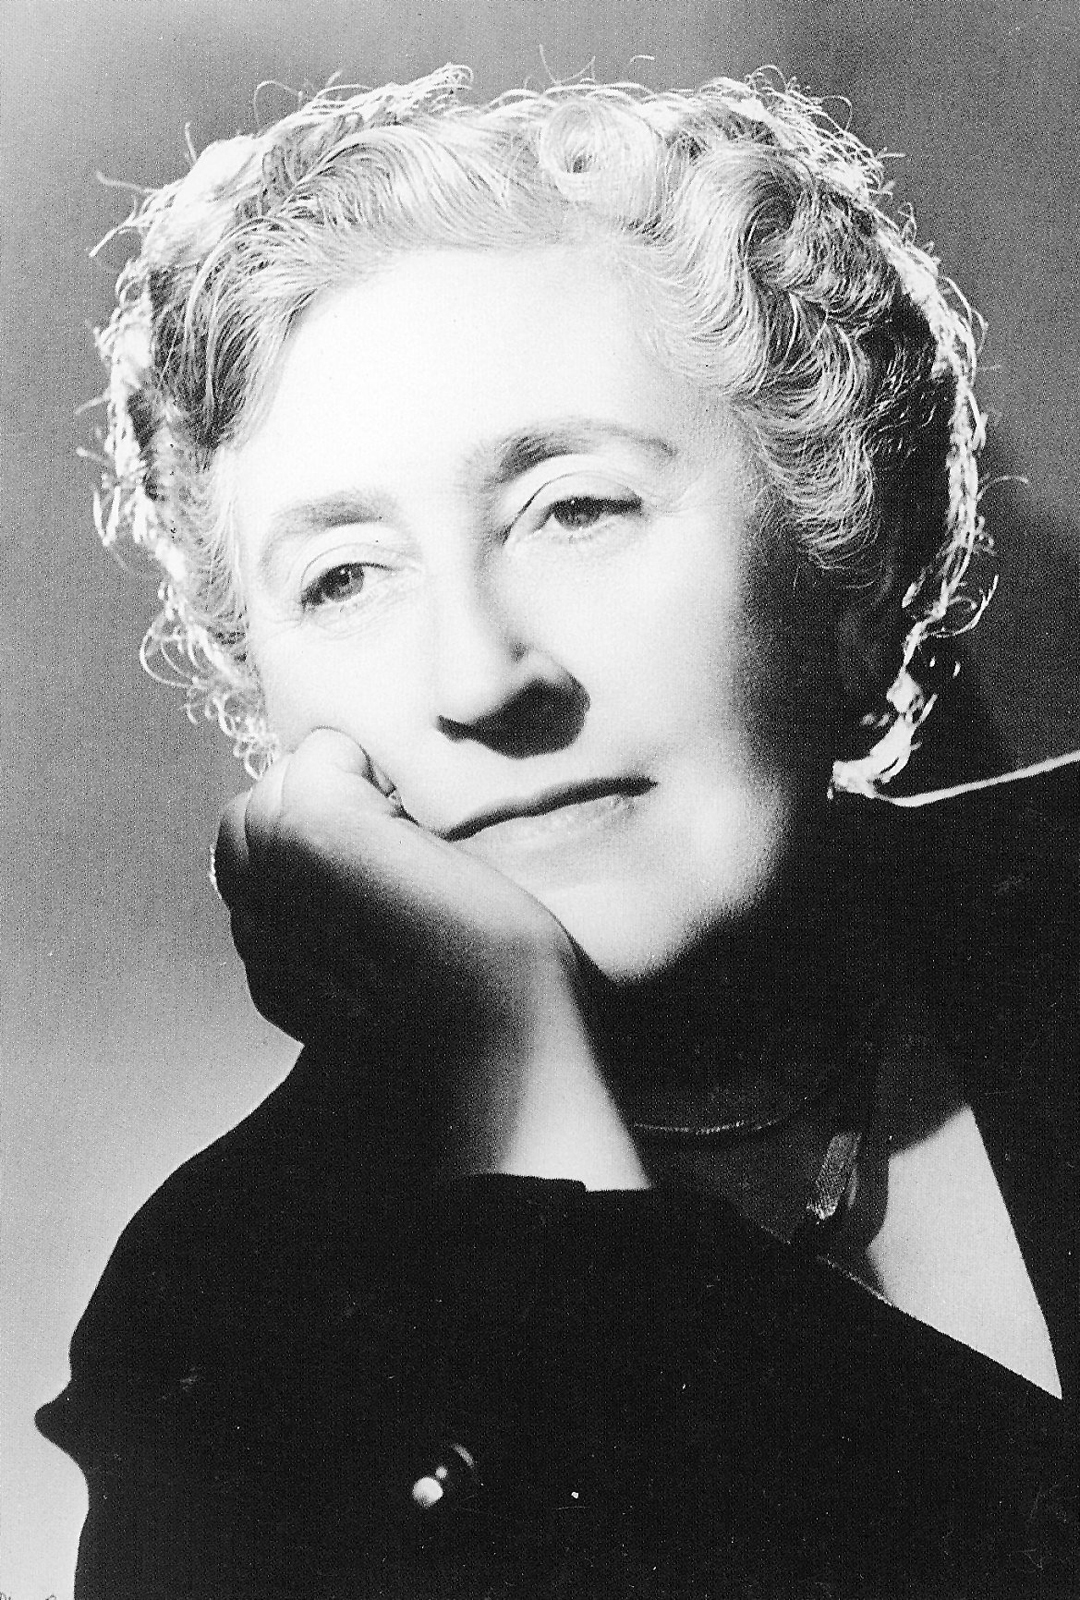 A portrait of Agatha Christie, Queen of Crime, born in Torquay